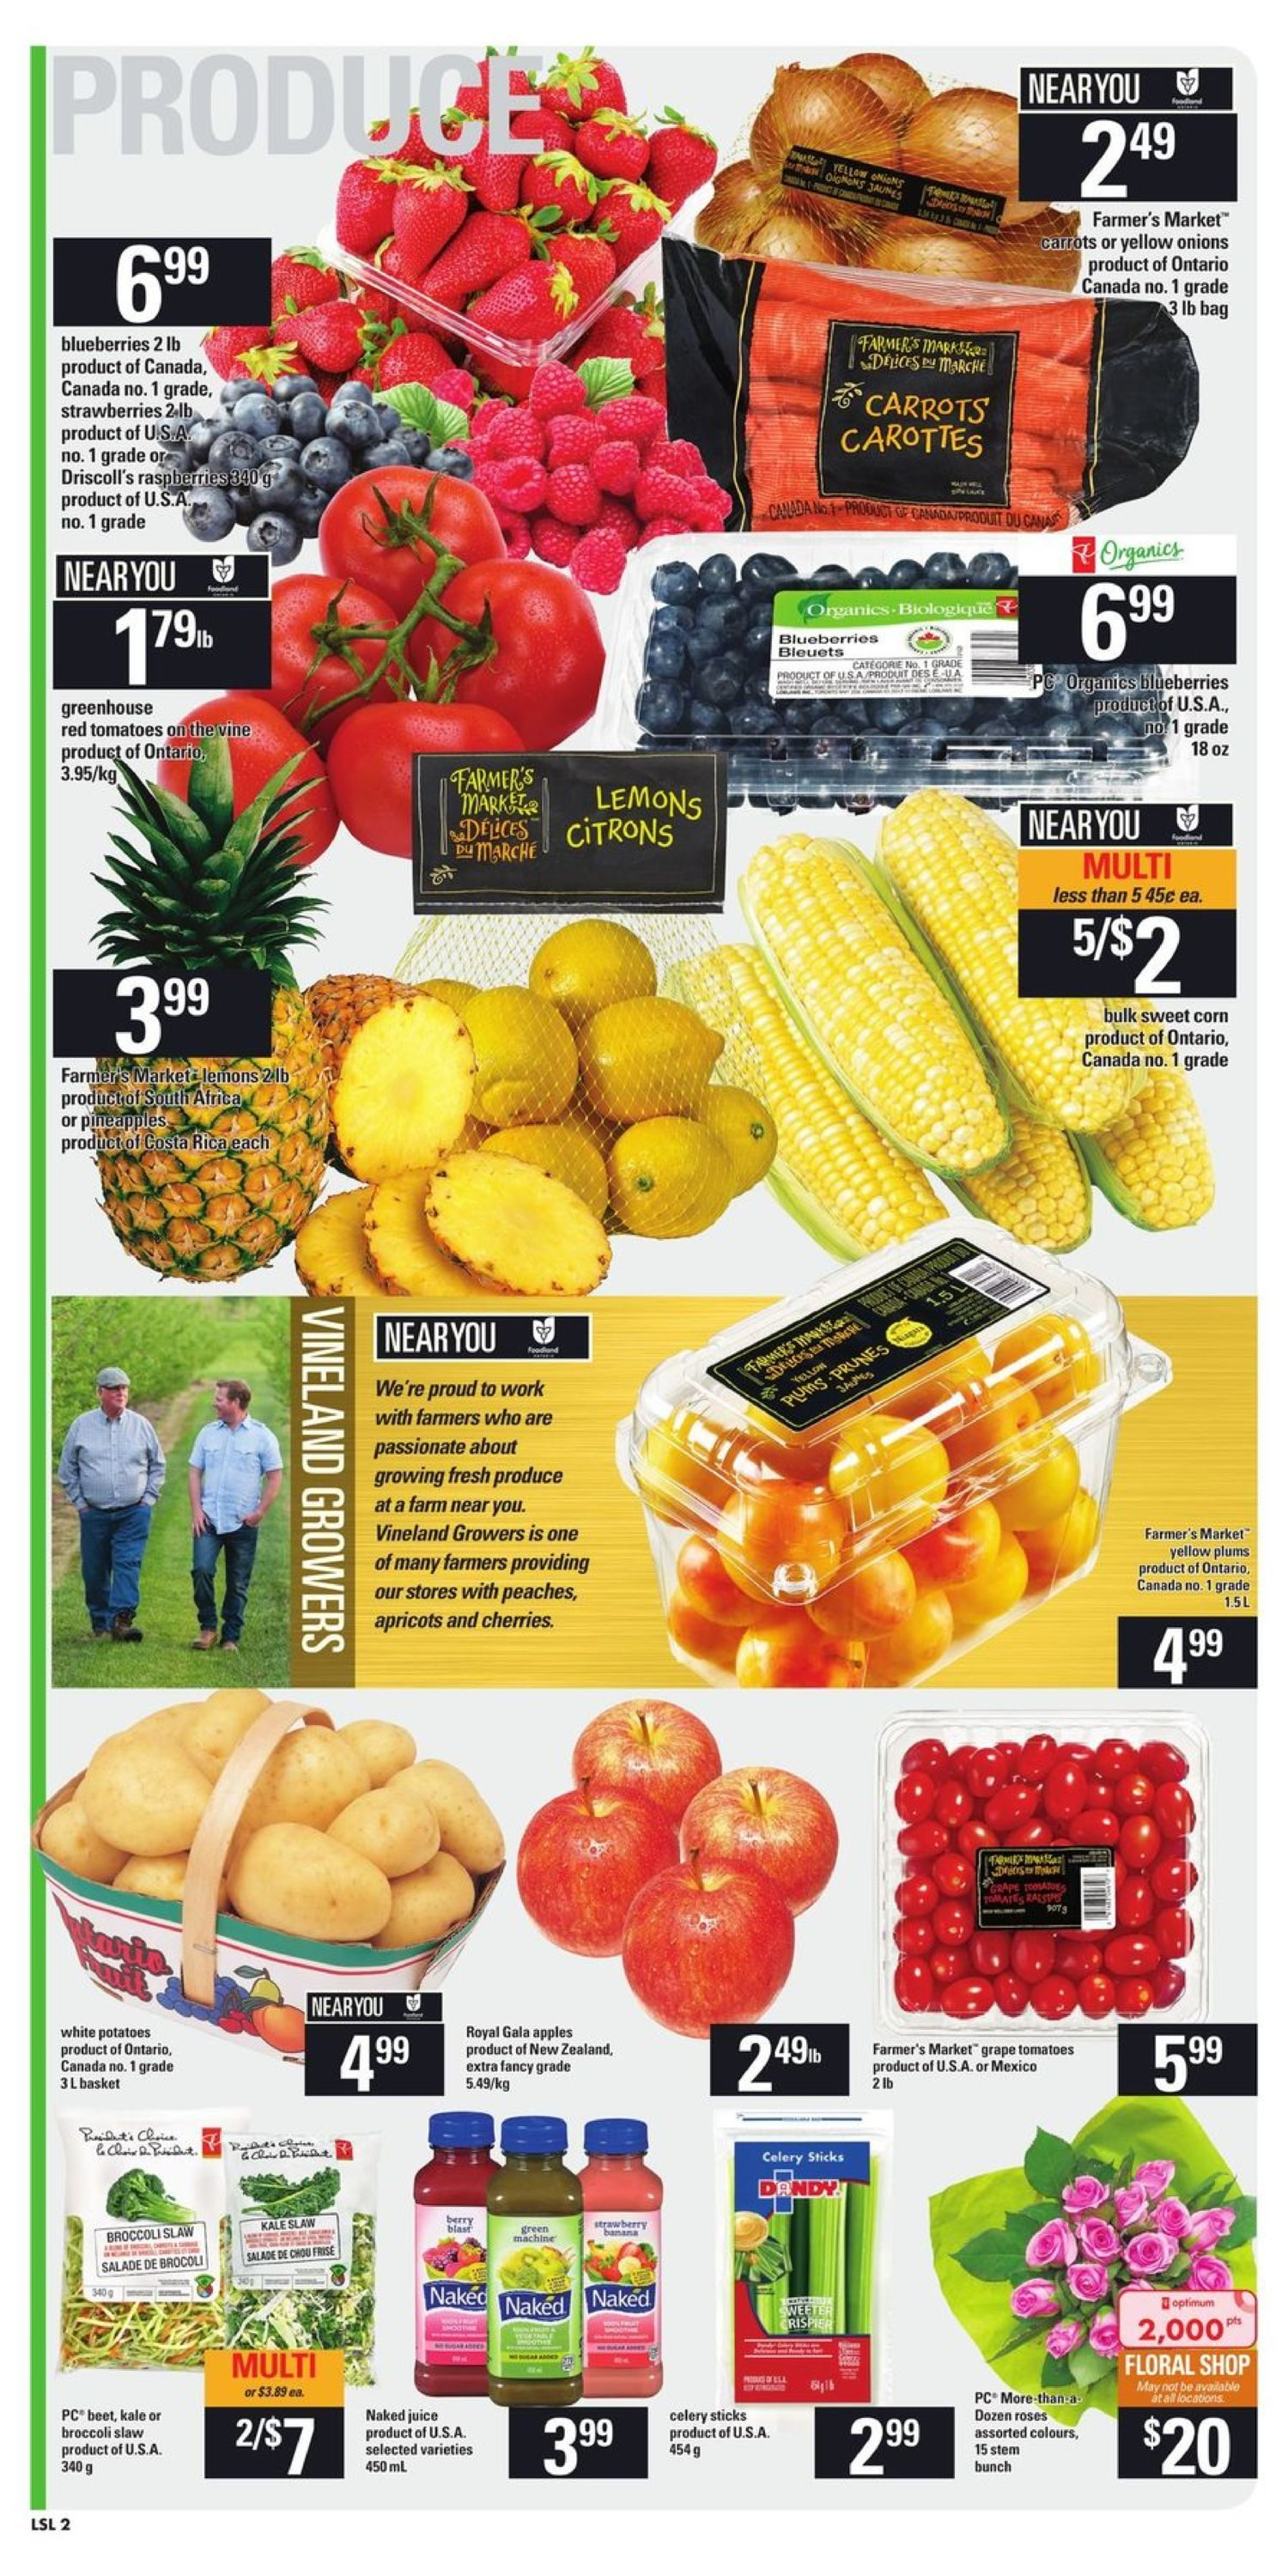 Loblaws Weekly Flyer The Oh Yes We Did Event Jul 26 Vienna Avocado Ampamp Milk Body Scrub 1kg Aug 1